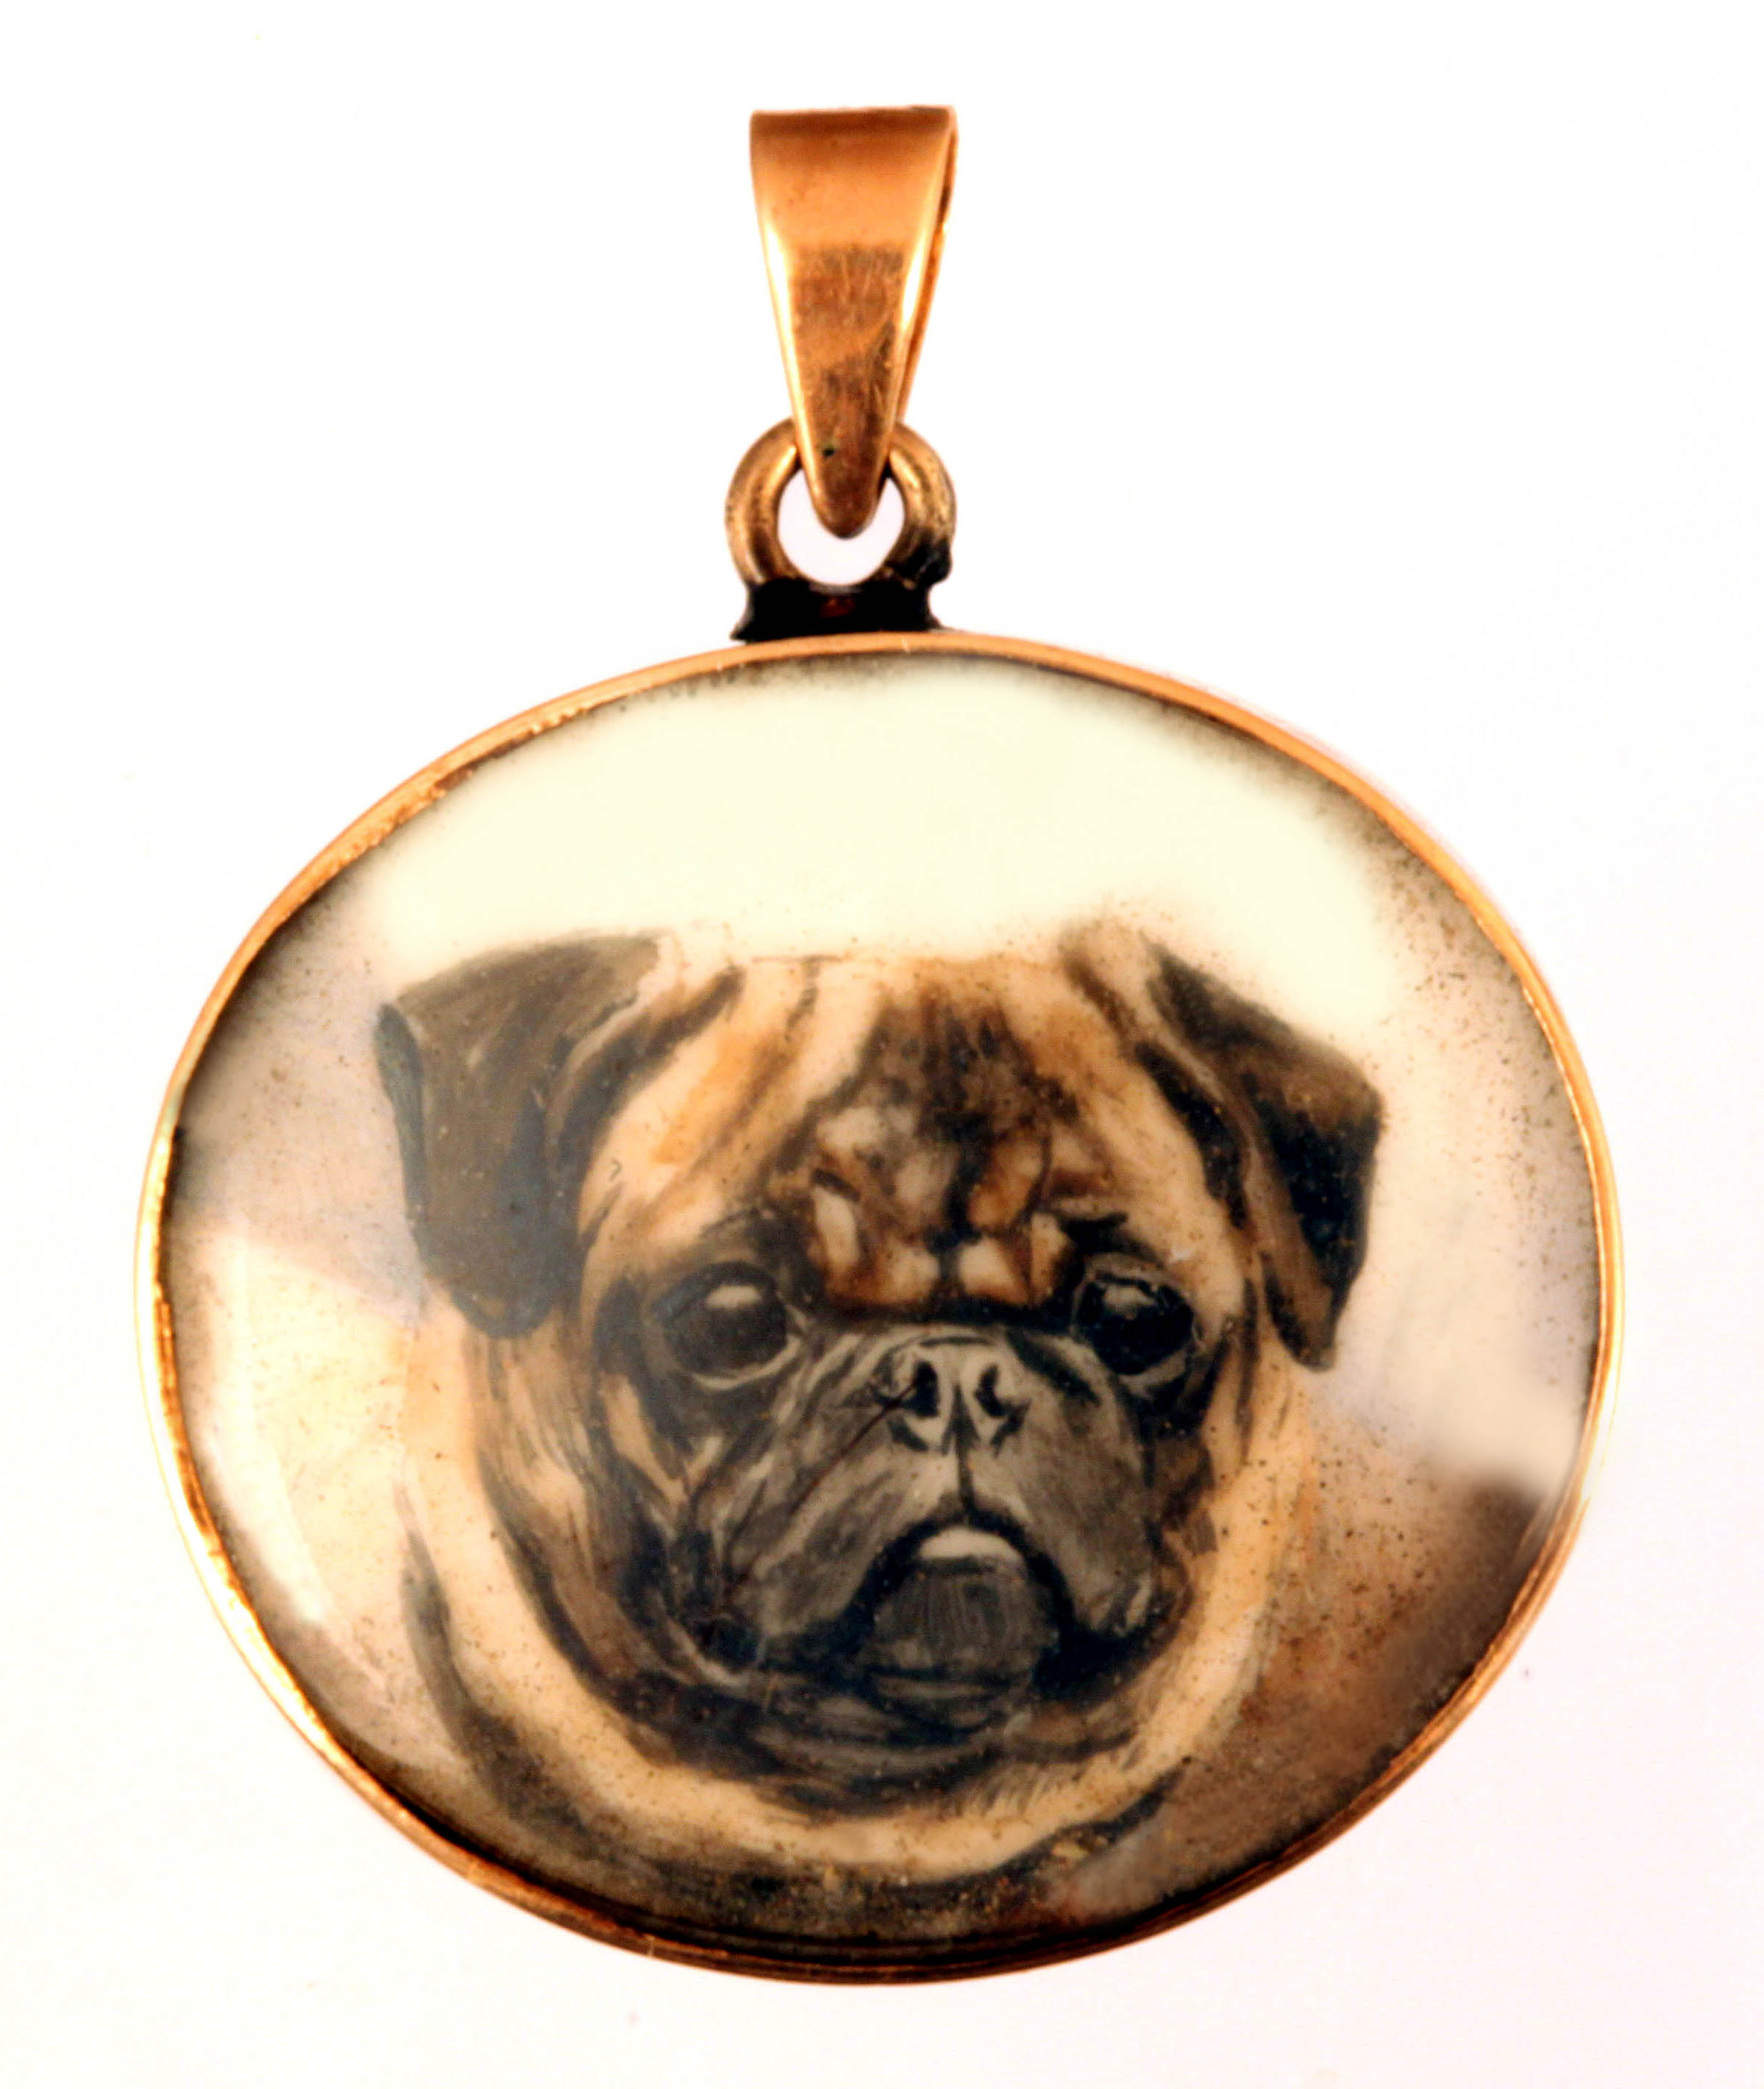 Click to see full size: Pendant of the Pug,